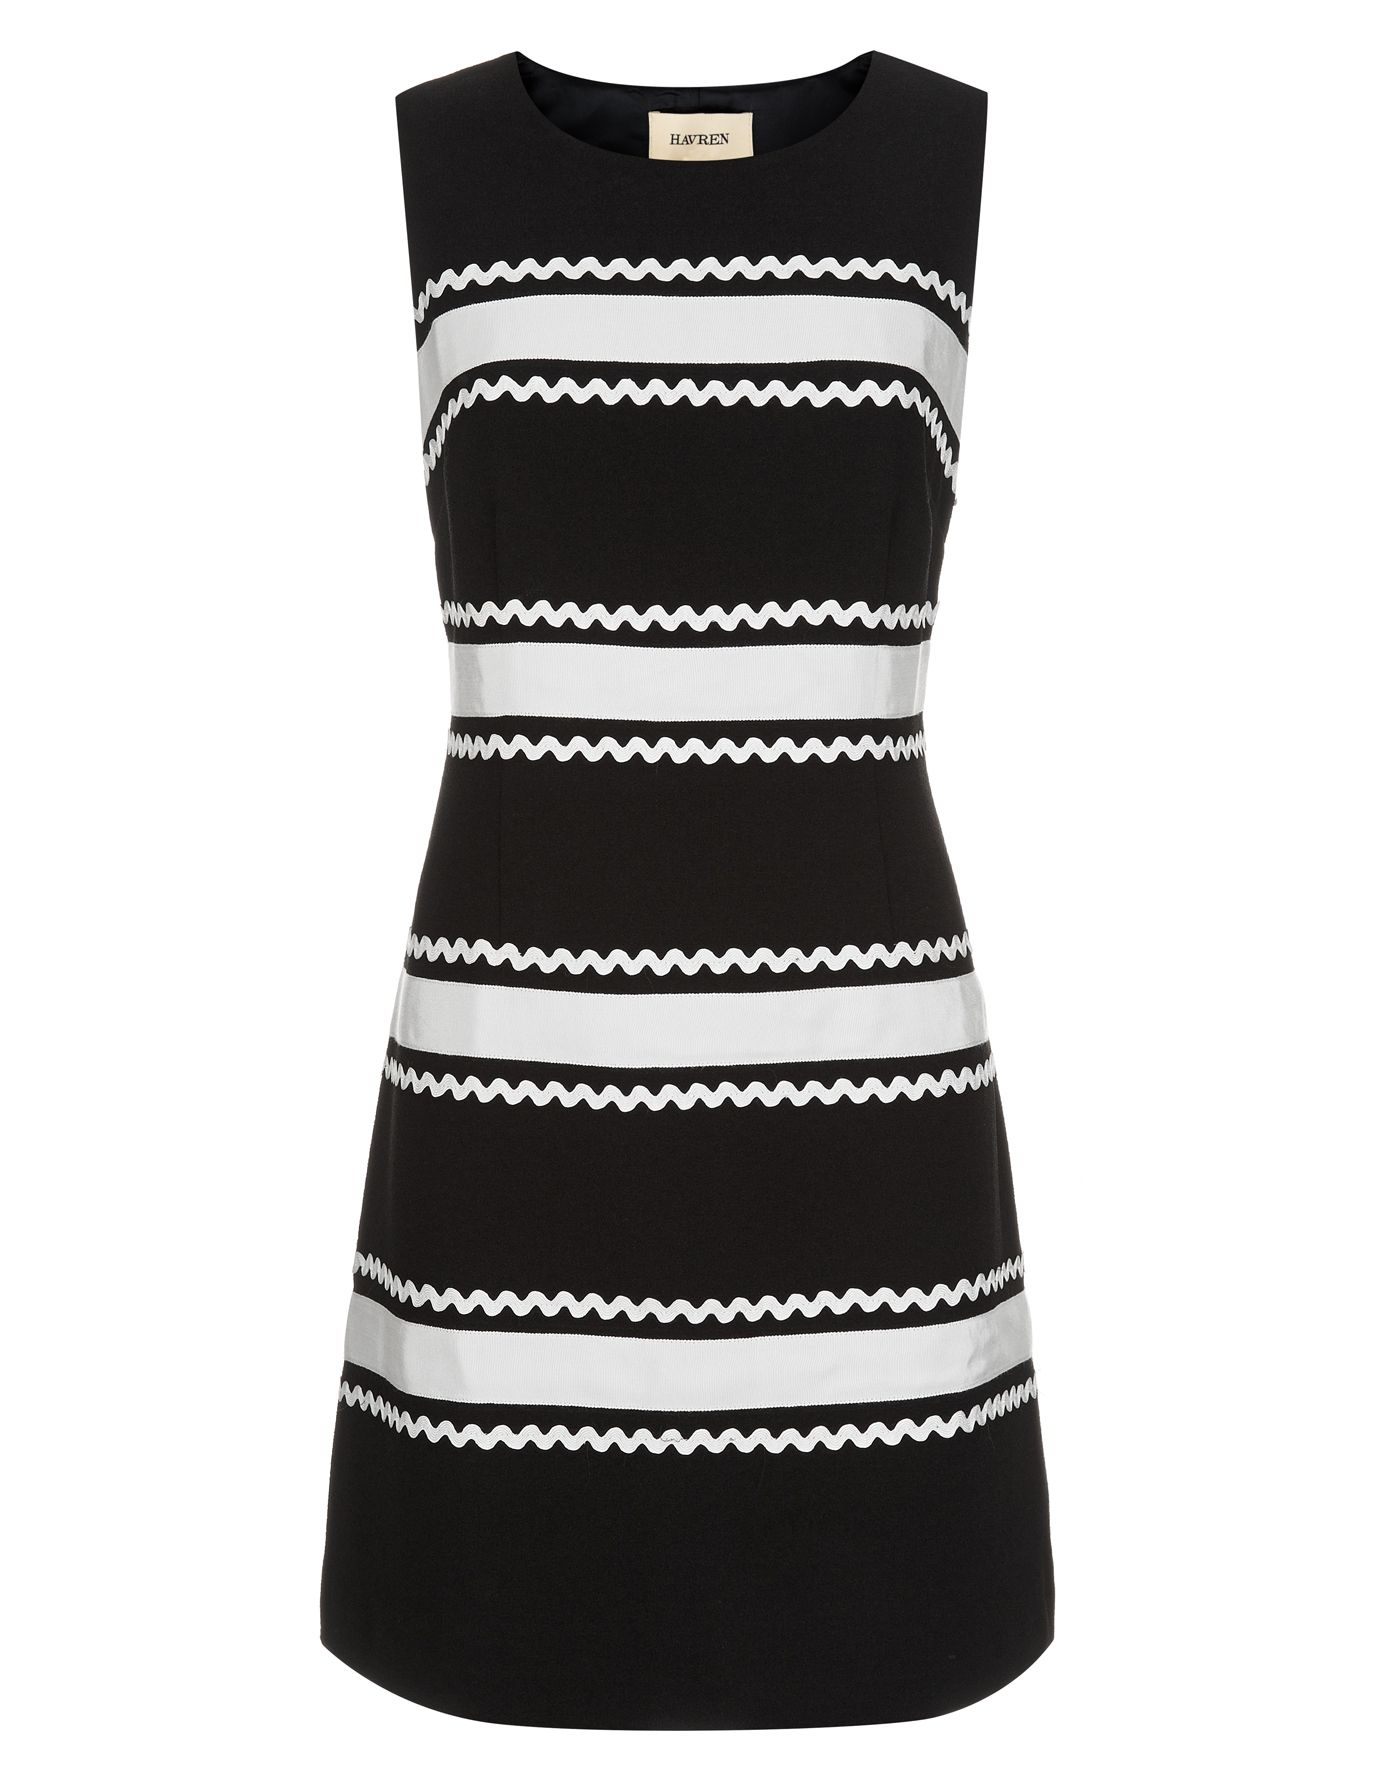 A-Line Trim Detail Dress